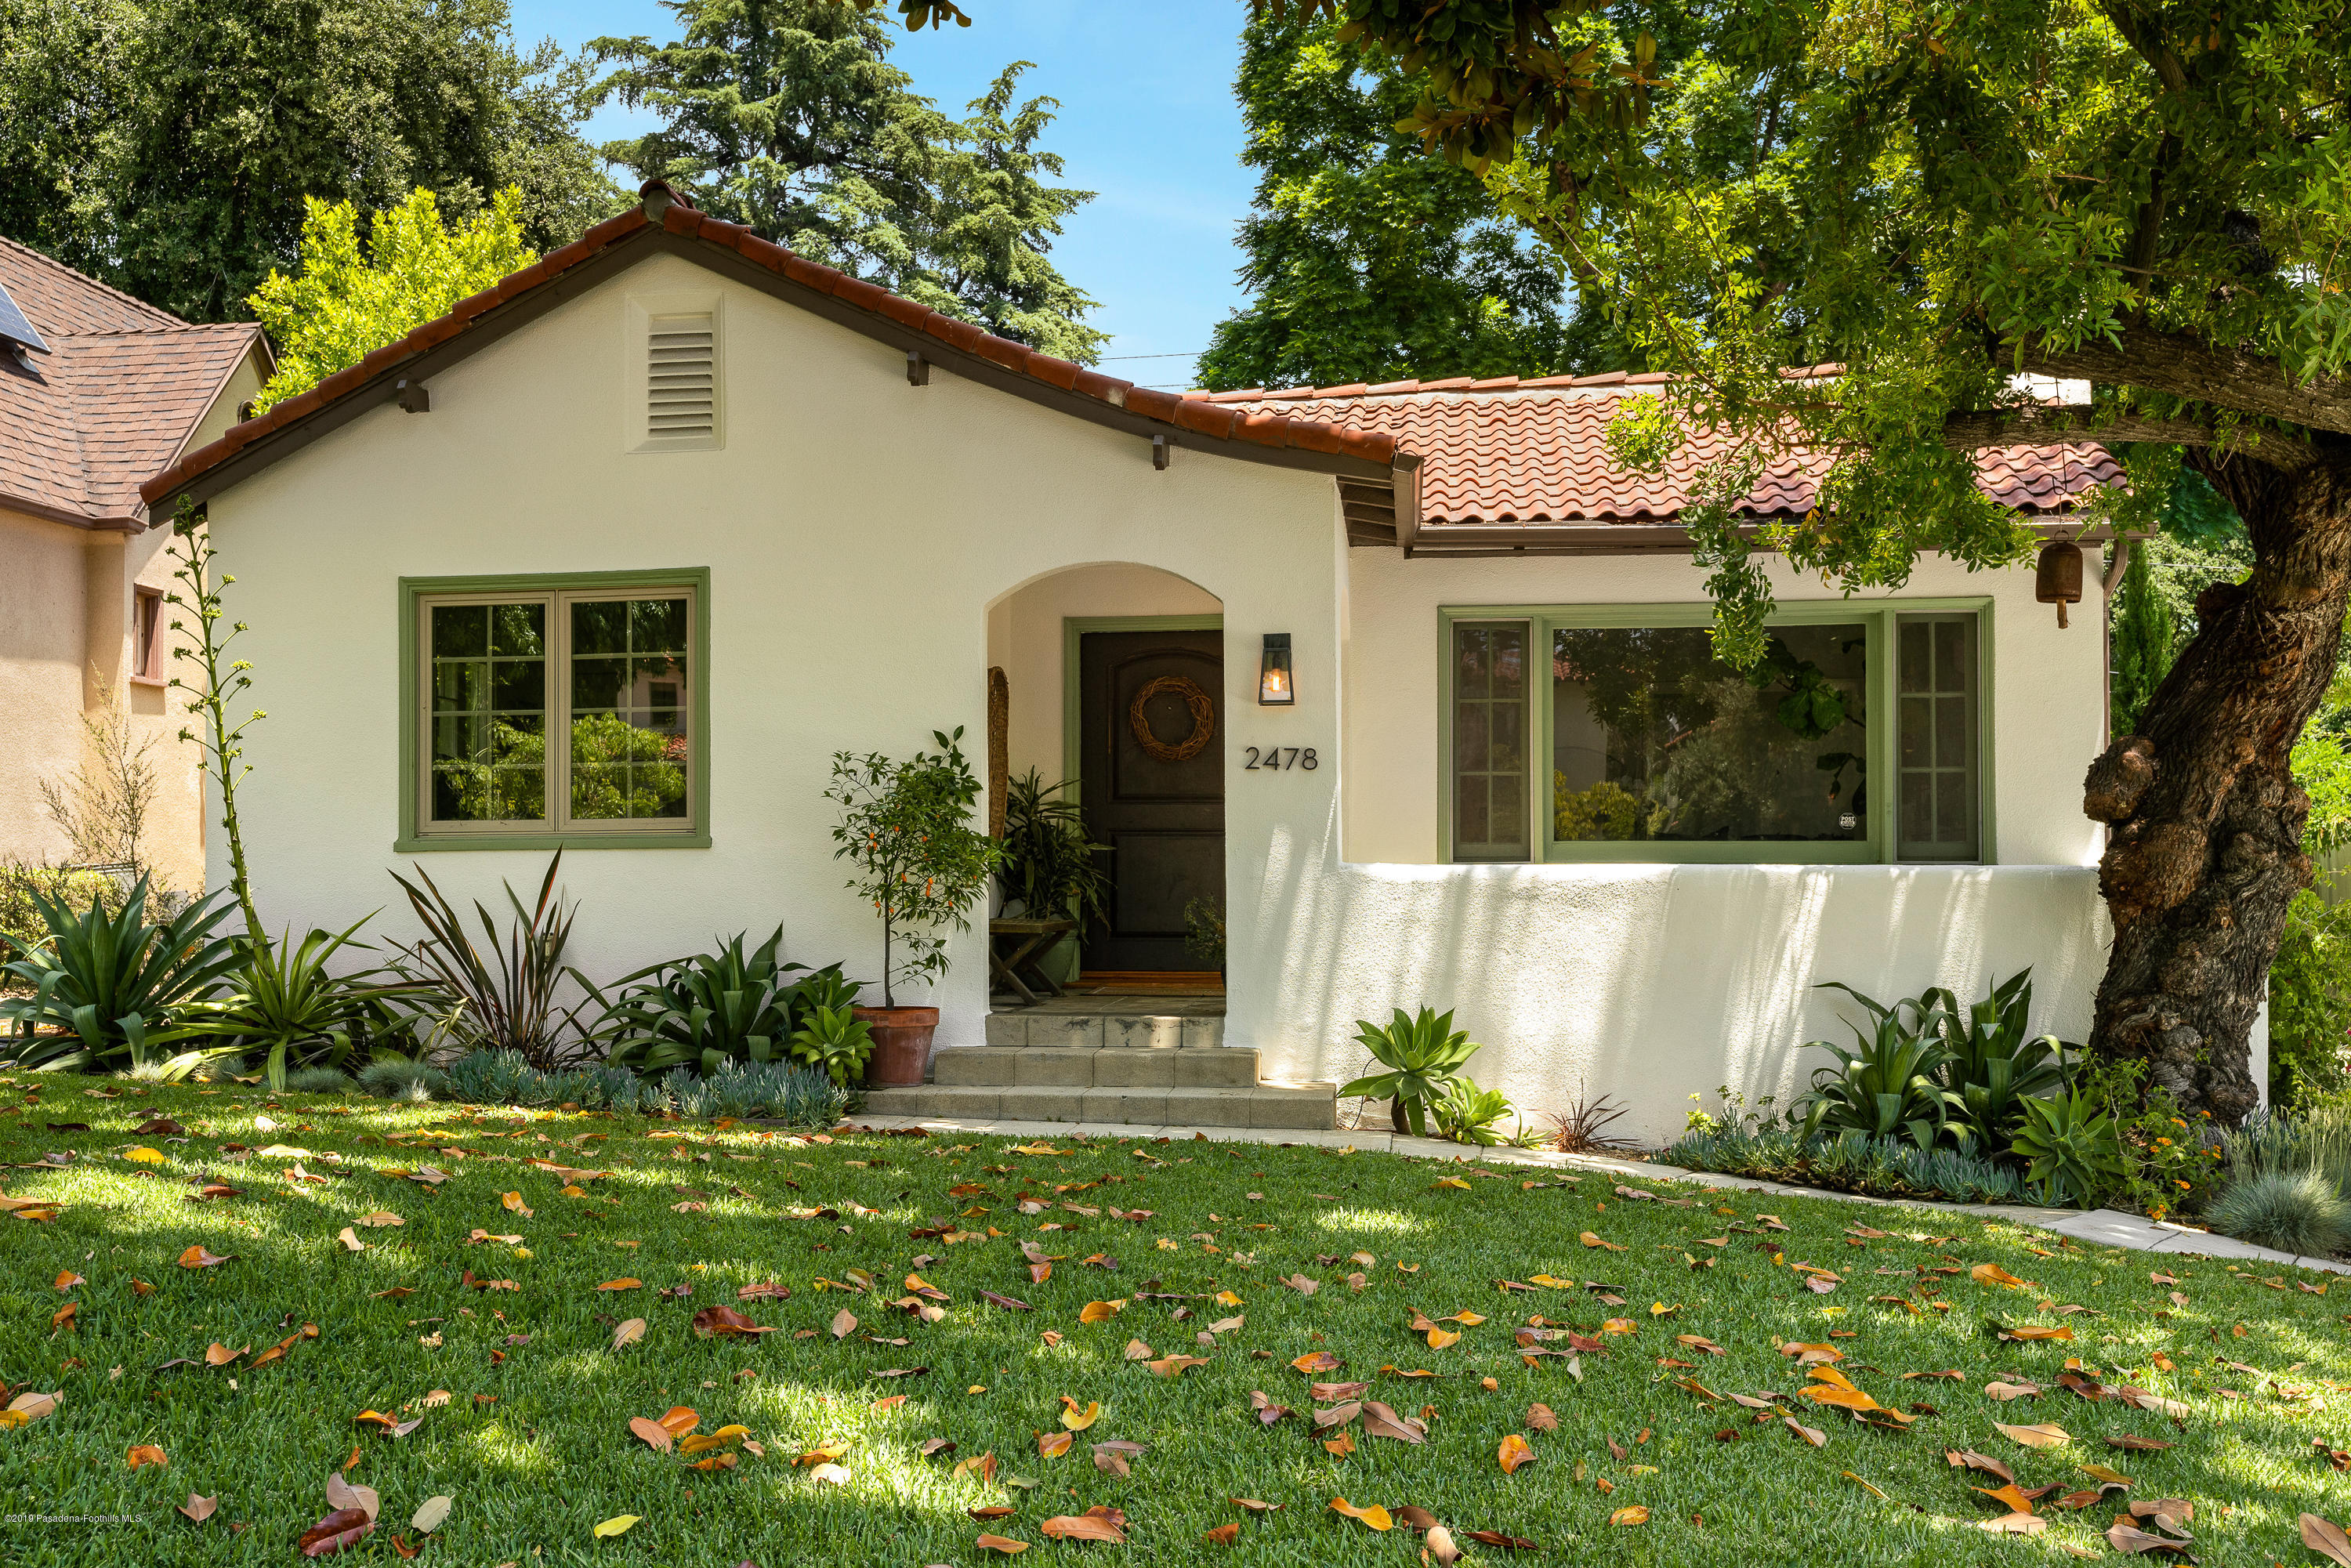 One of Altadena 3 Bedroom Homes for Sale at 2478 Highland Avenue